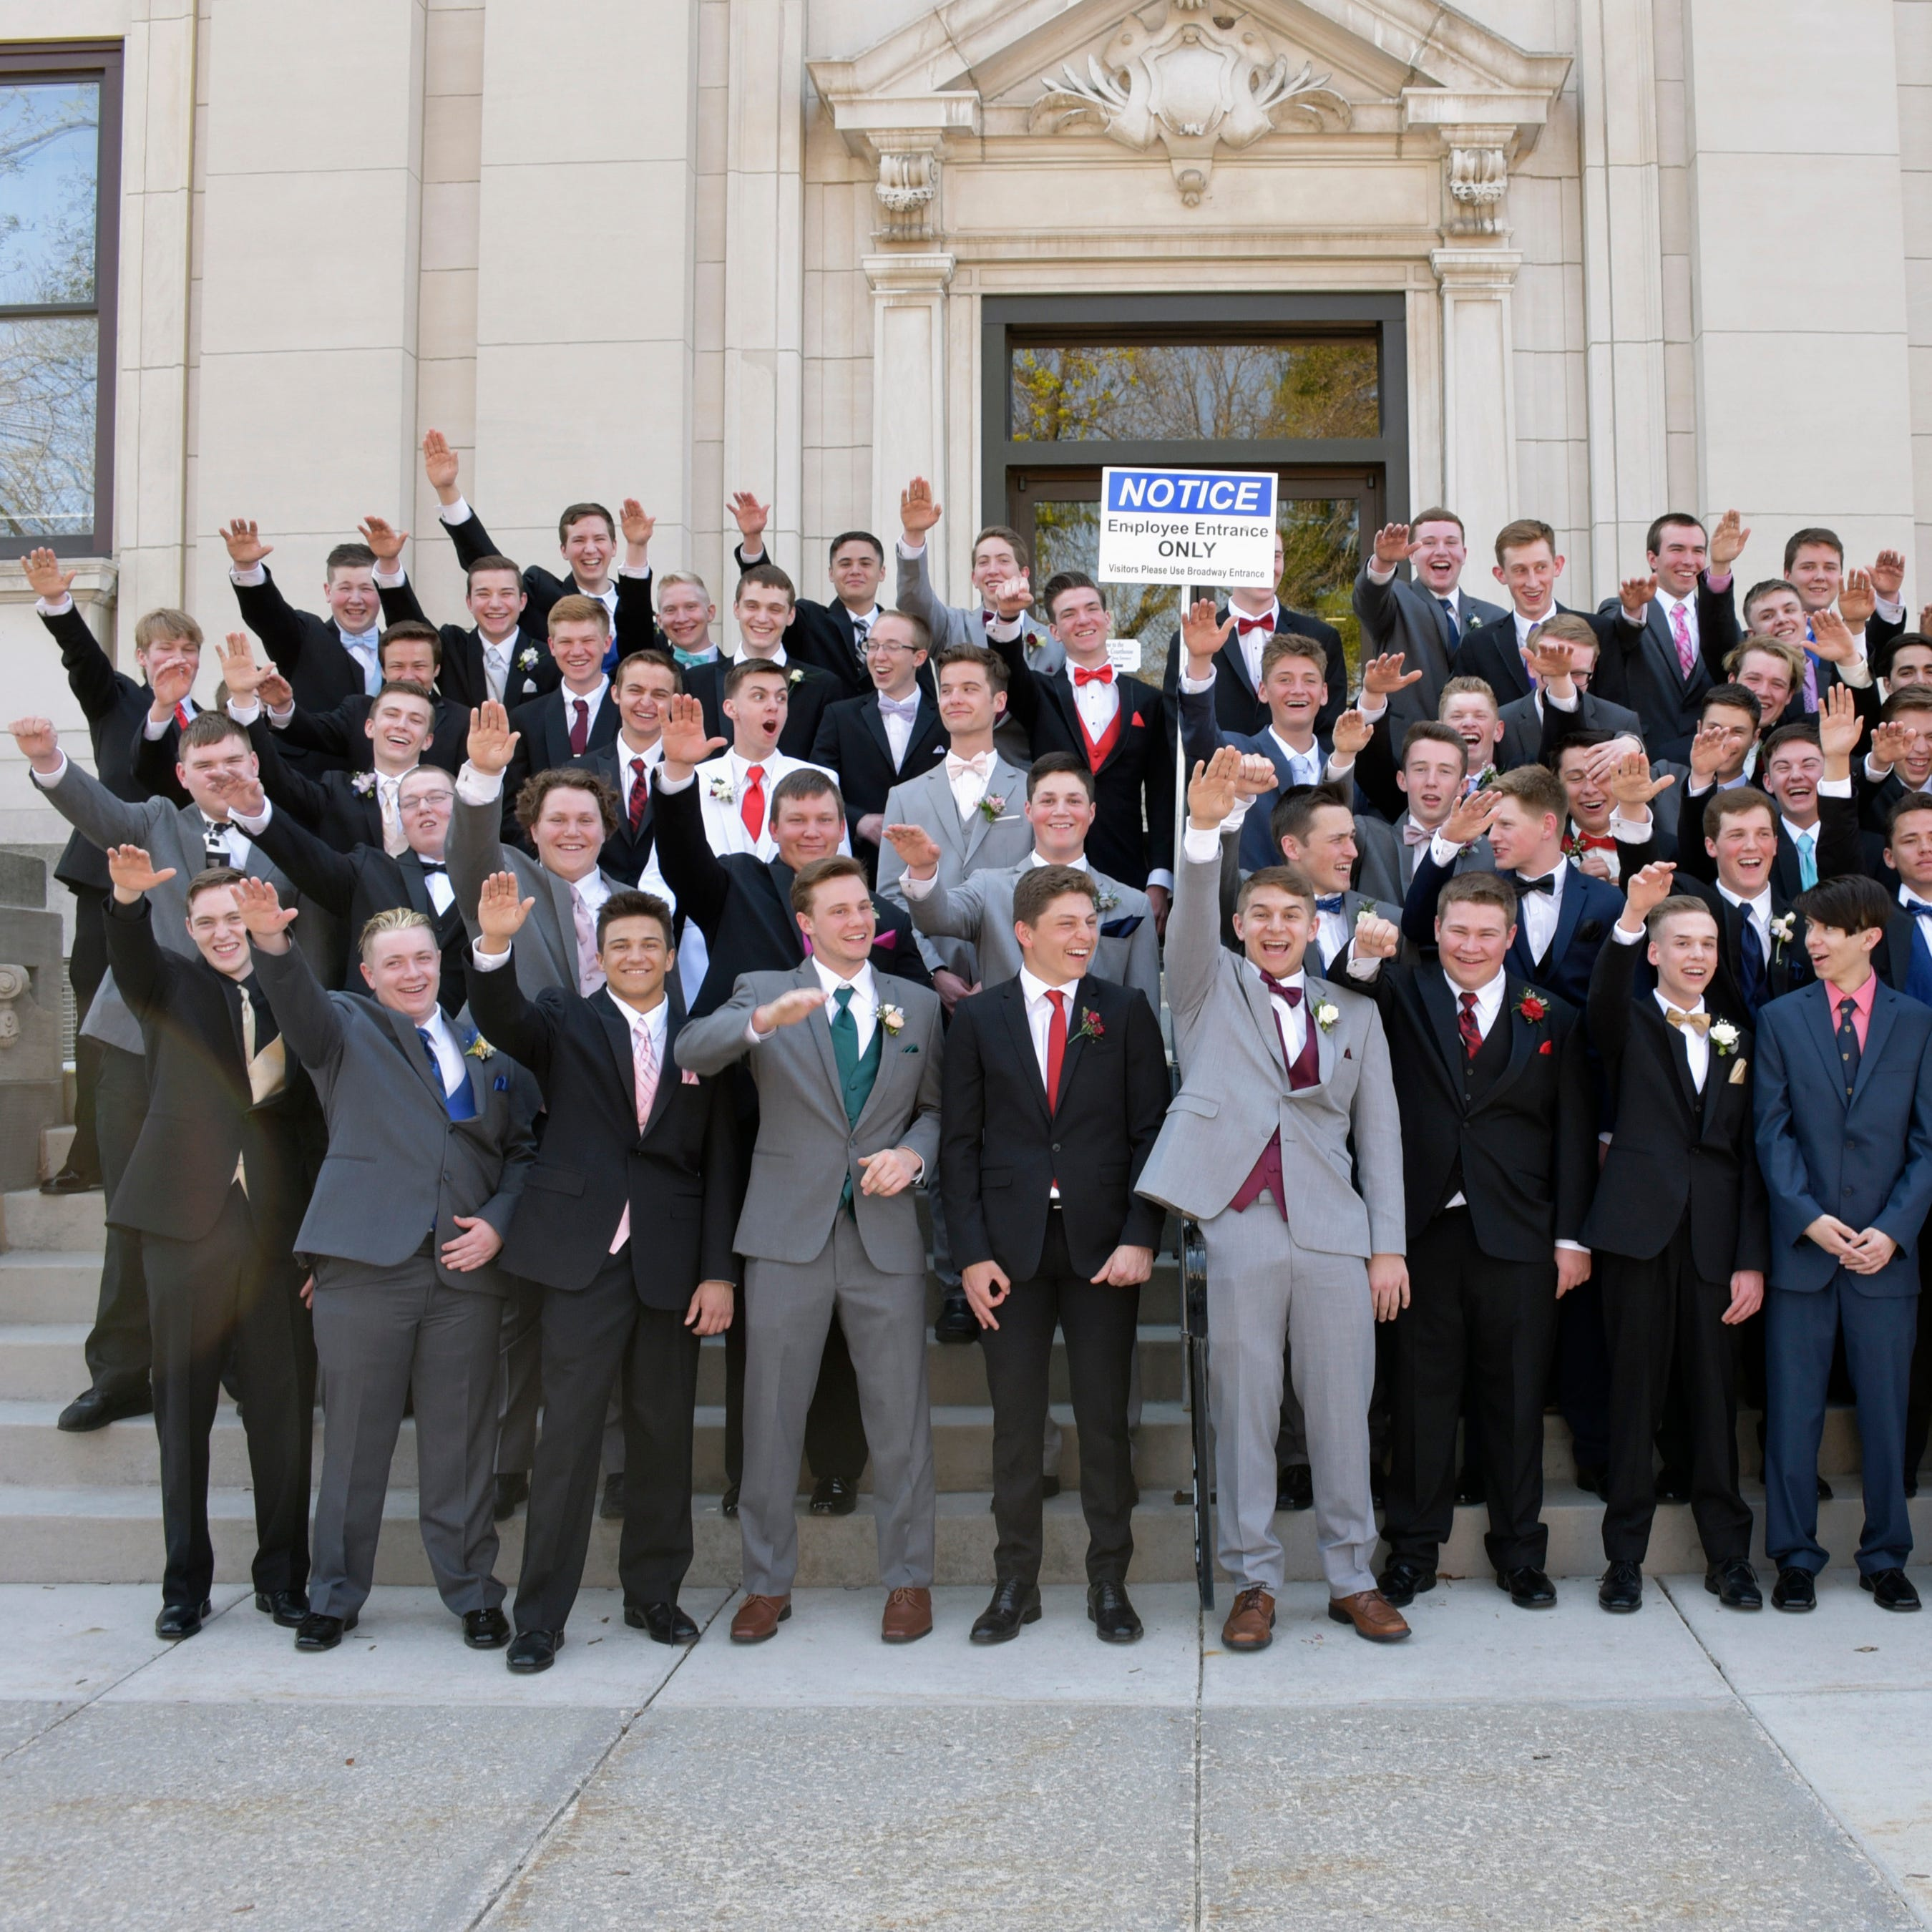 Baraboo Nazi salute photo is a chance to learn